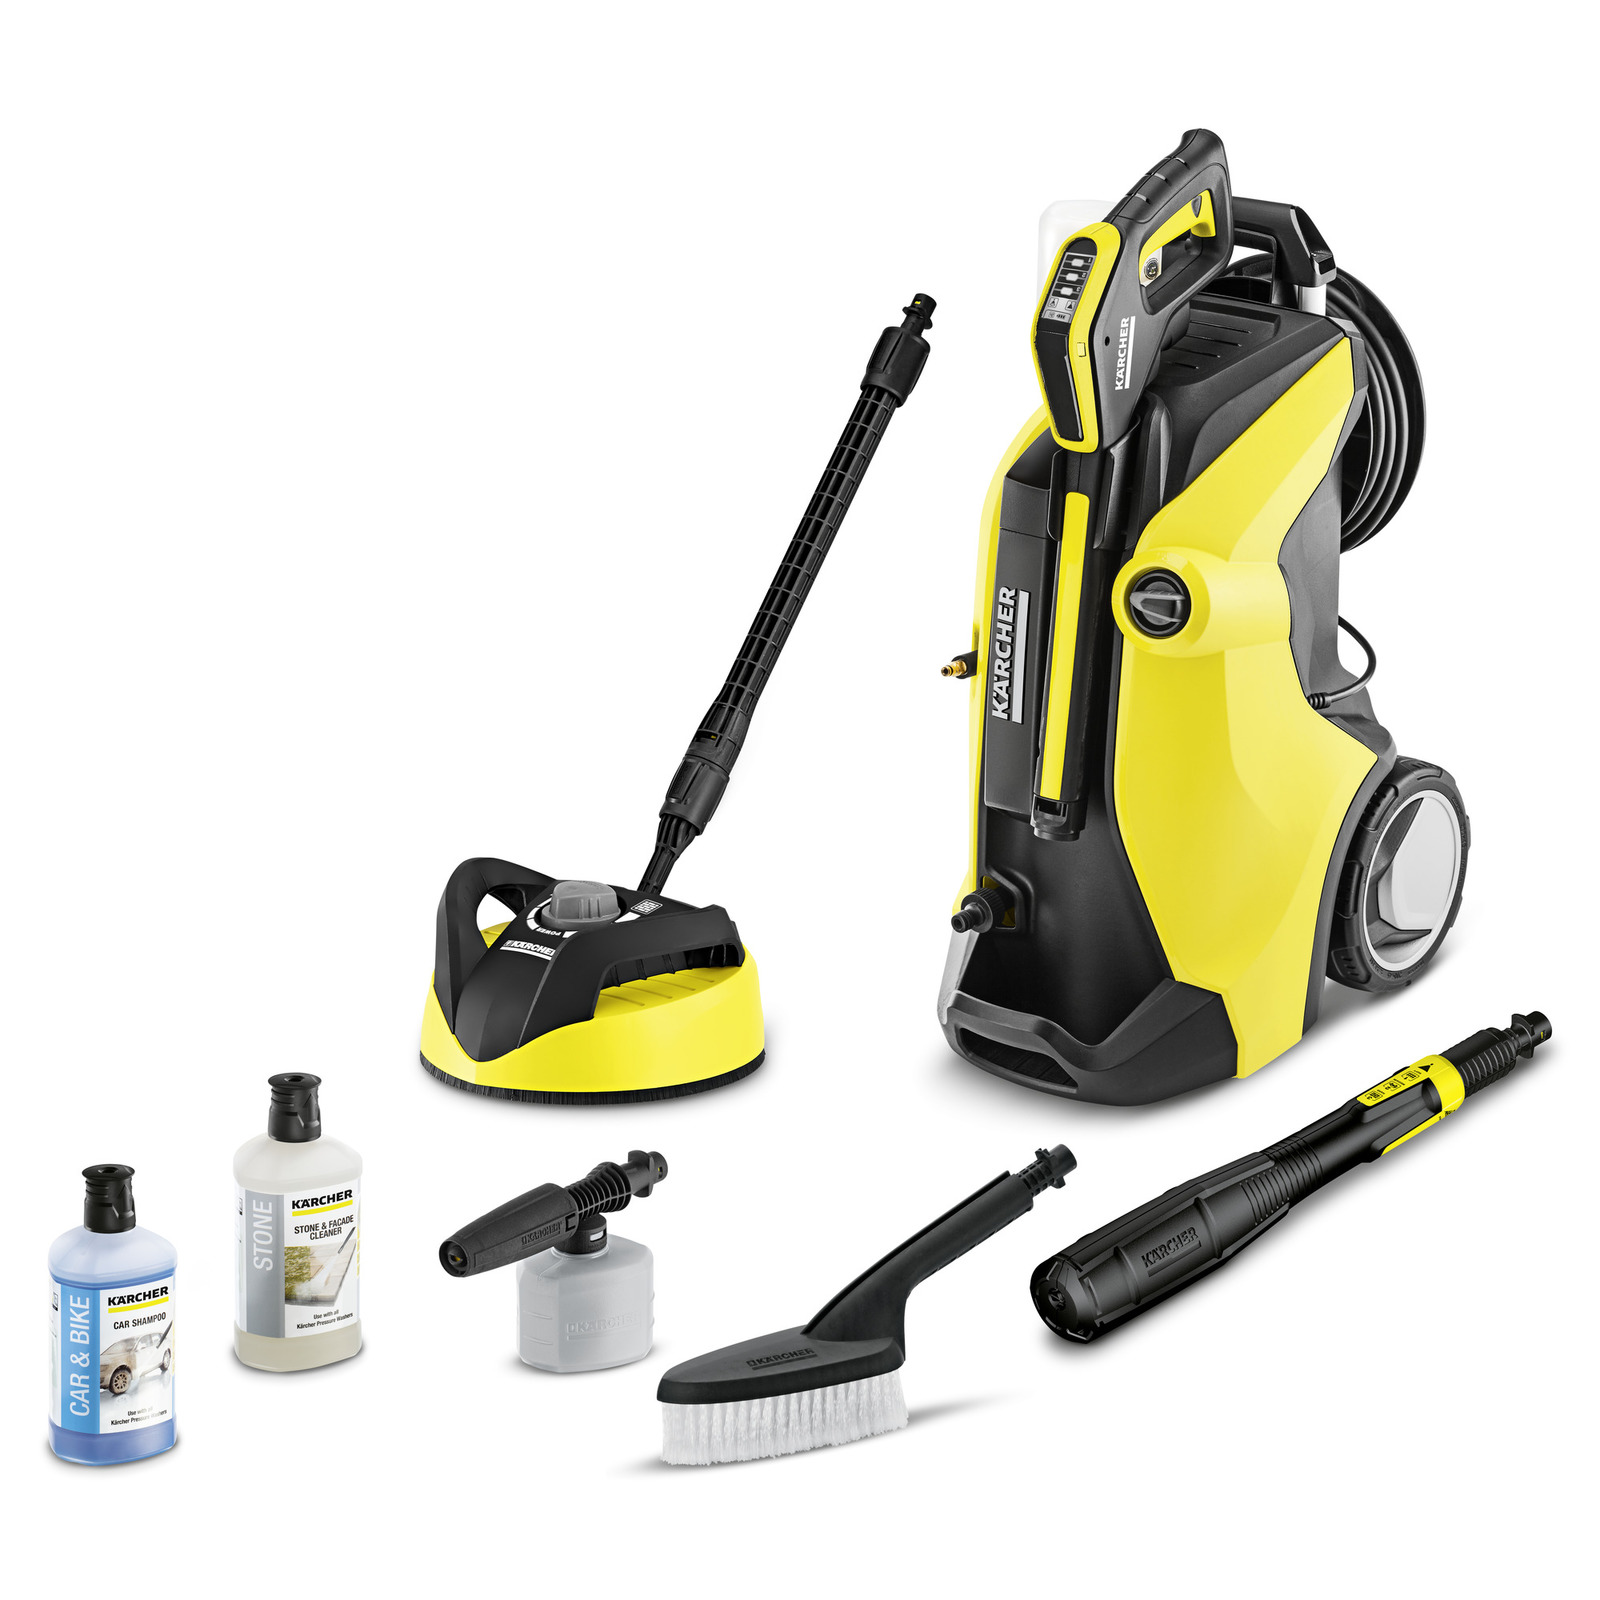 pressure washer k 7 premium fc plus karcher australia. Black Bedroom Furniture Sets. Home Design Ideas